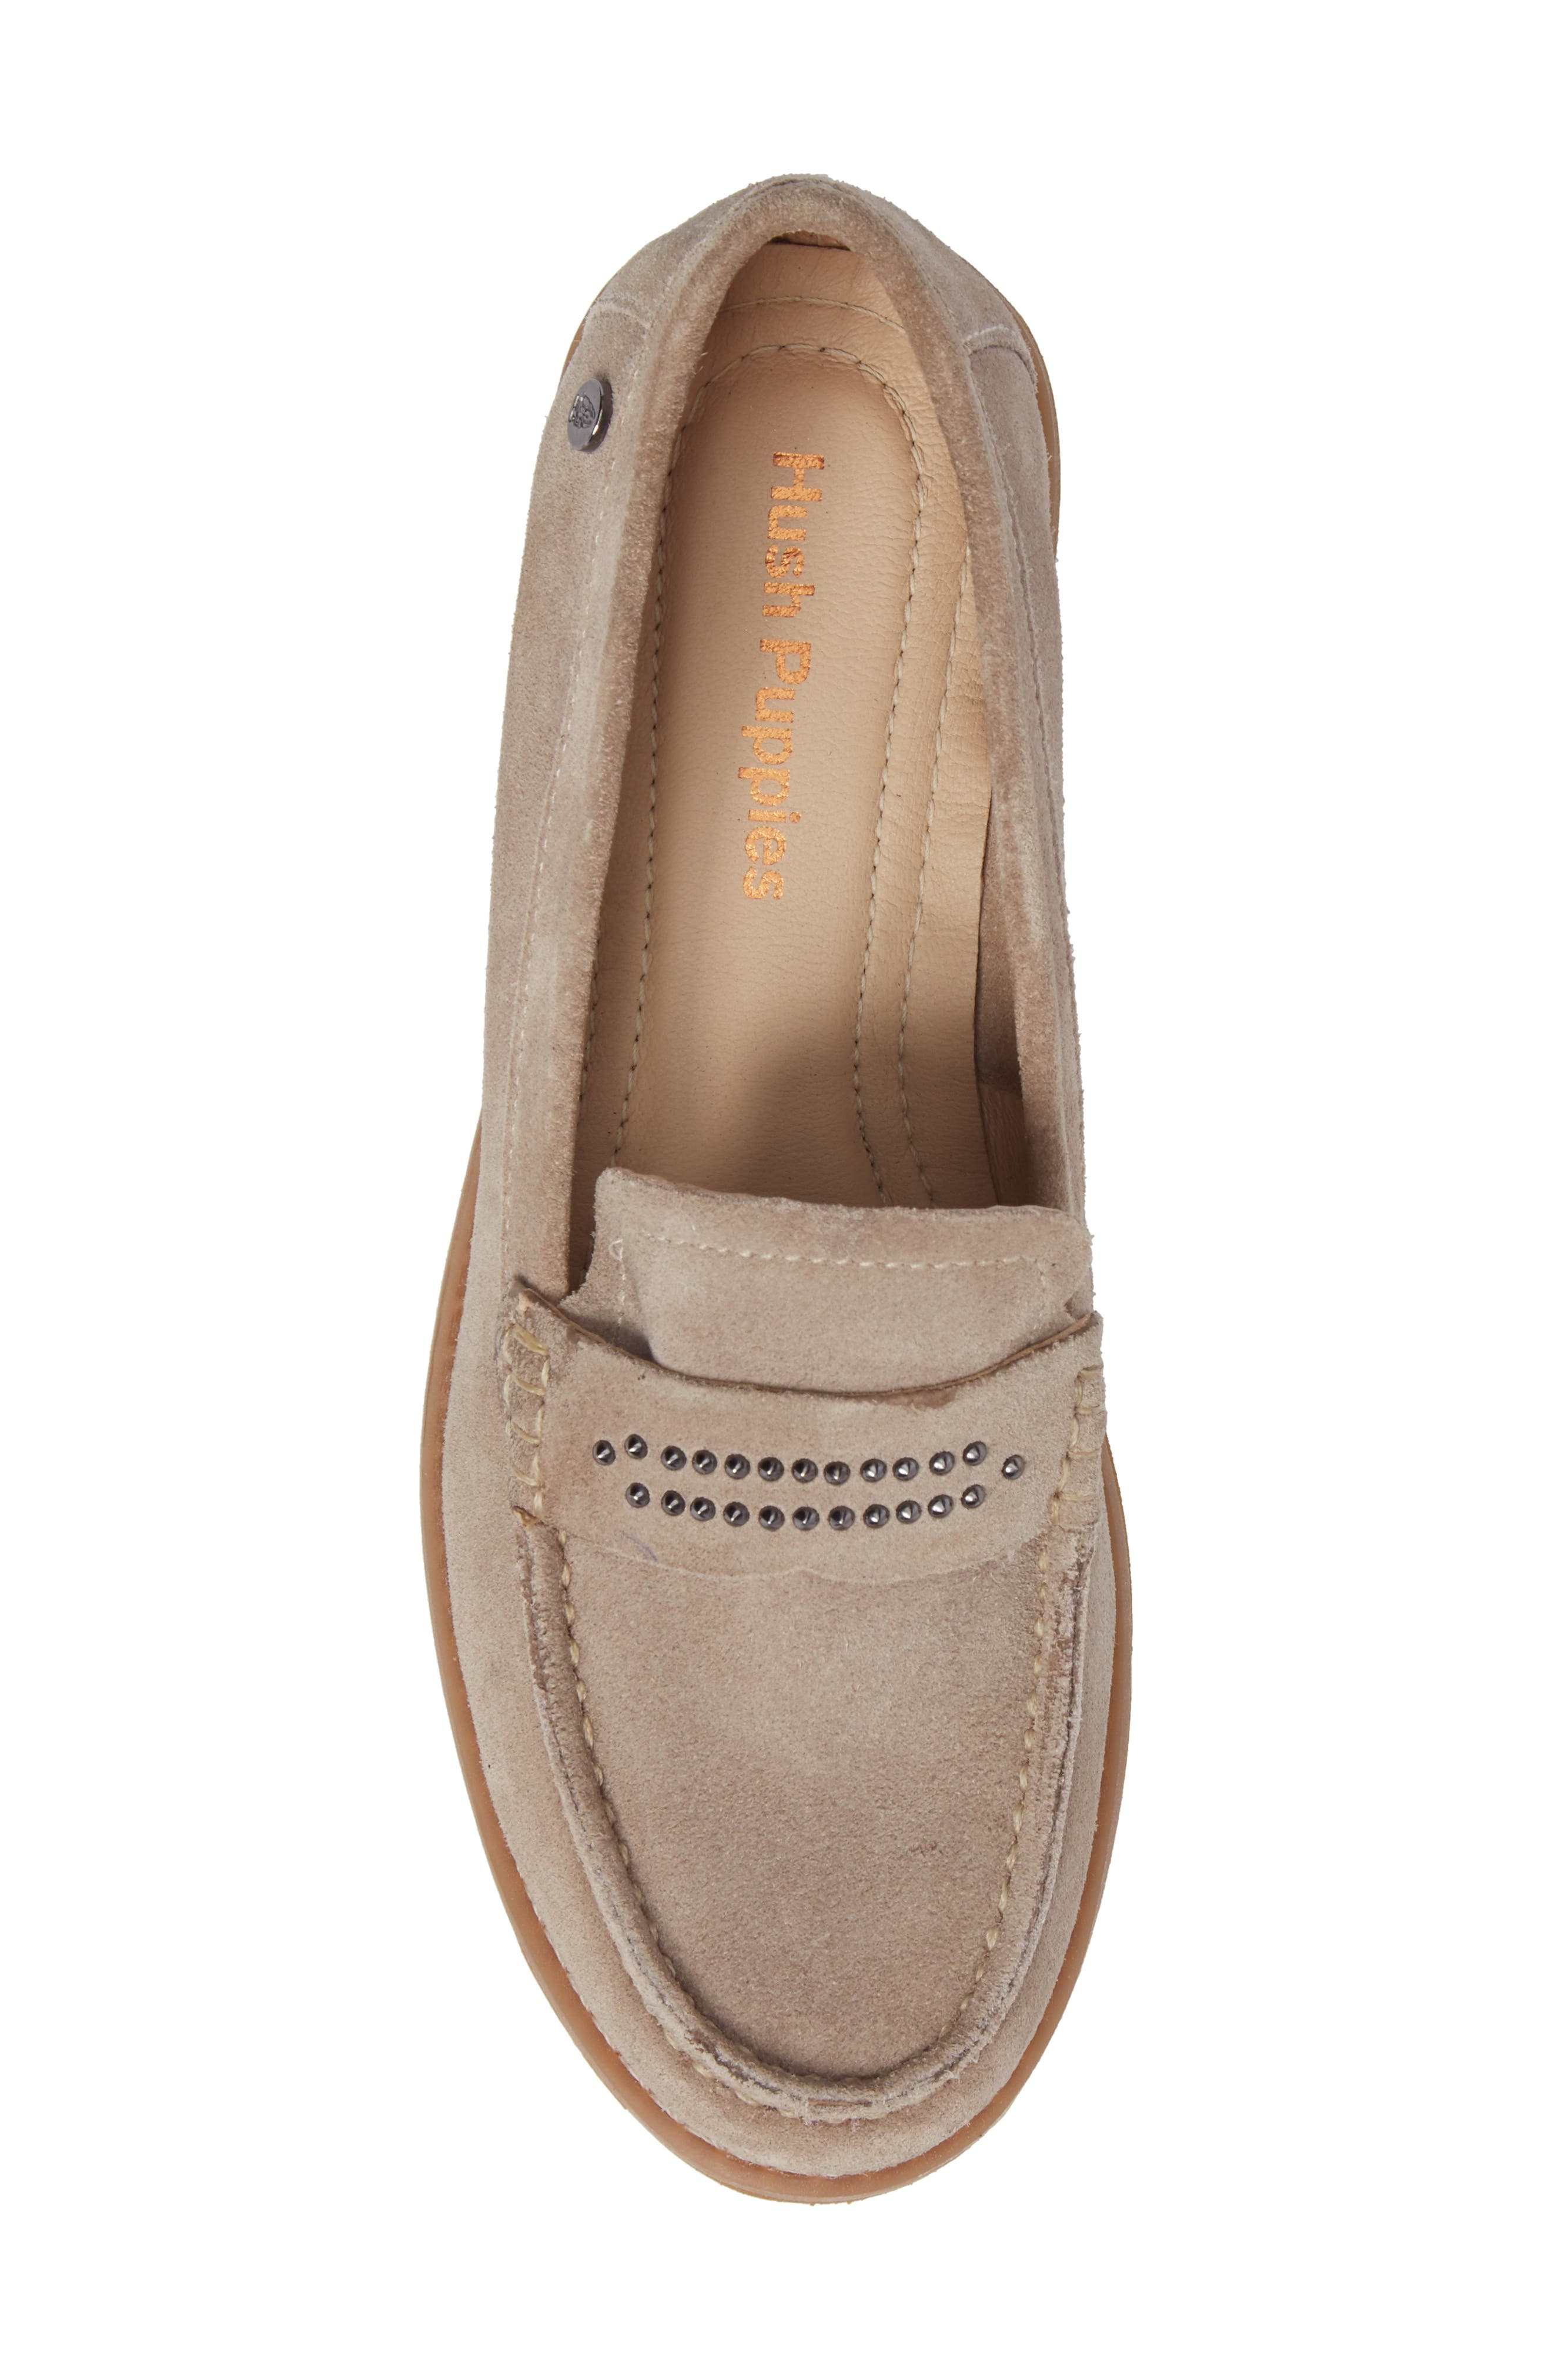 Aubree Chardon Loafer,                             Alternate thumbnail 5, color,                             Taupe Suede